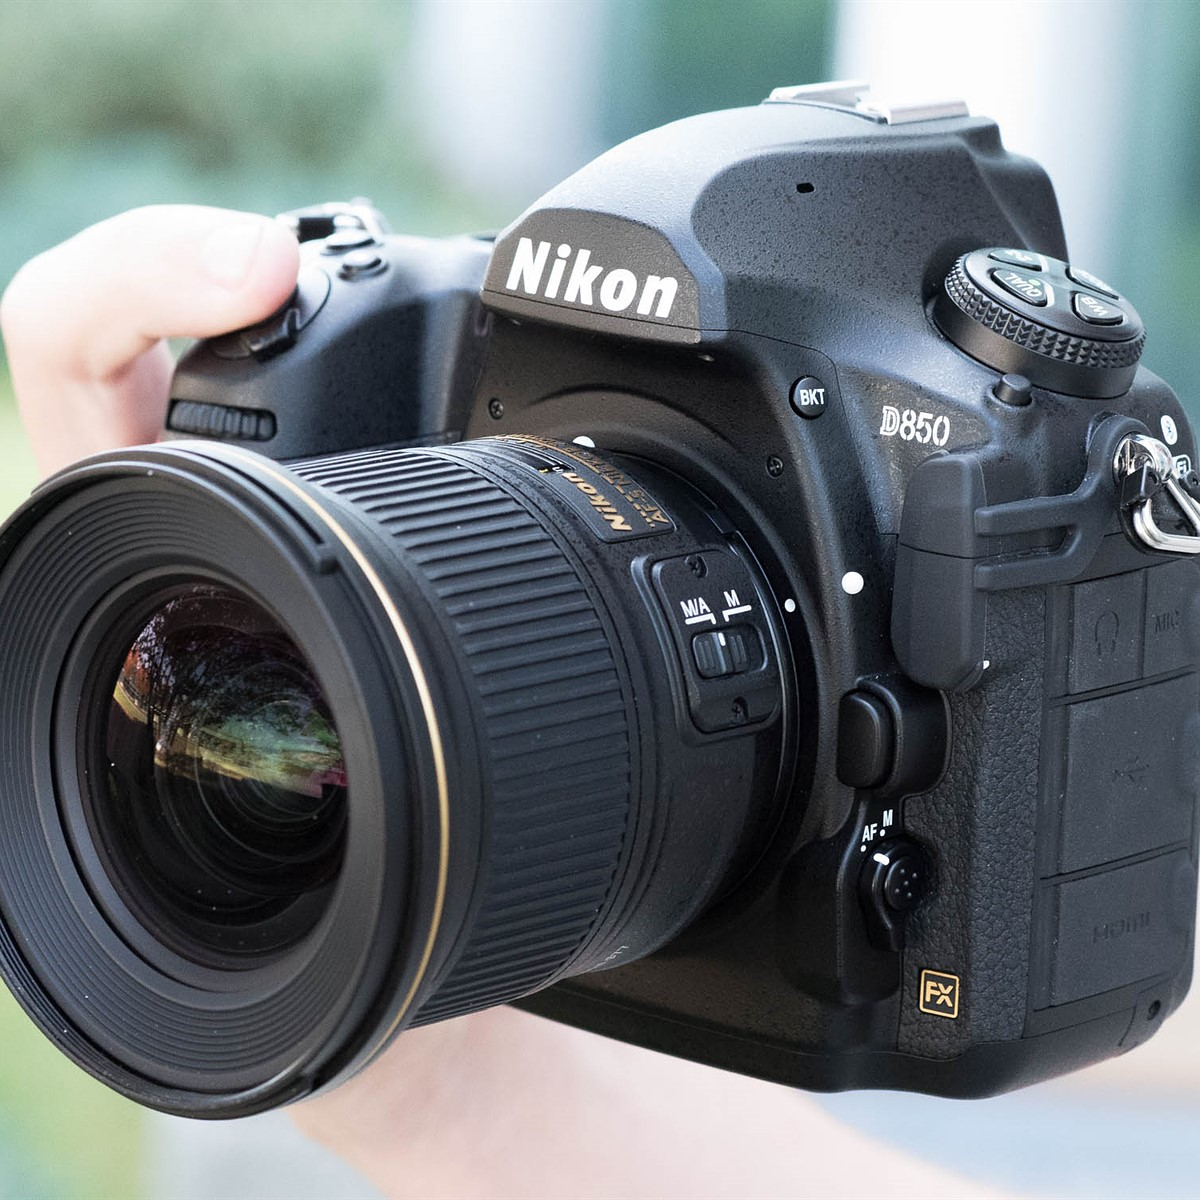 Should you upgrade to a Nikon D850?: Digital Photography Review